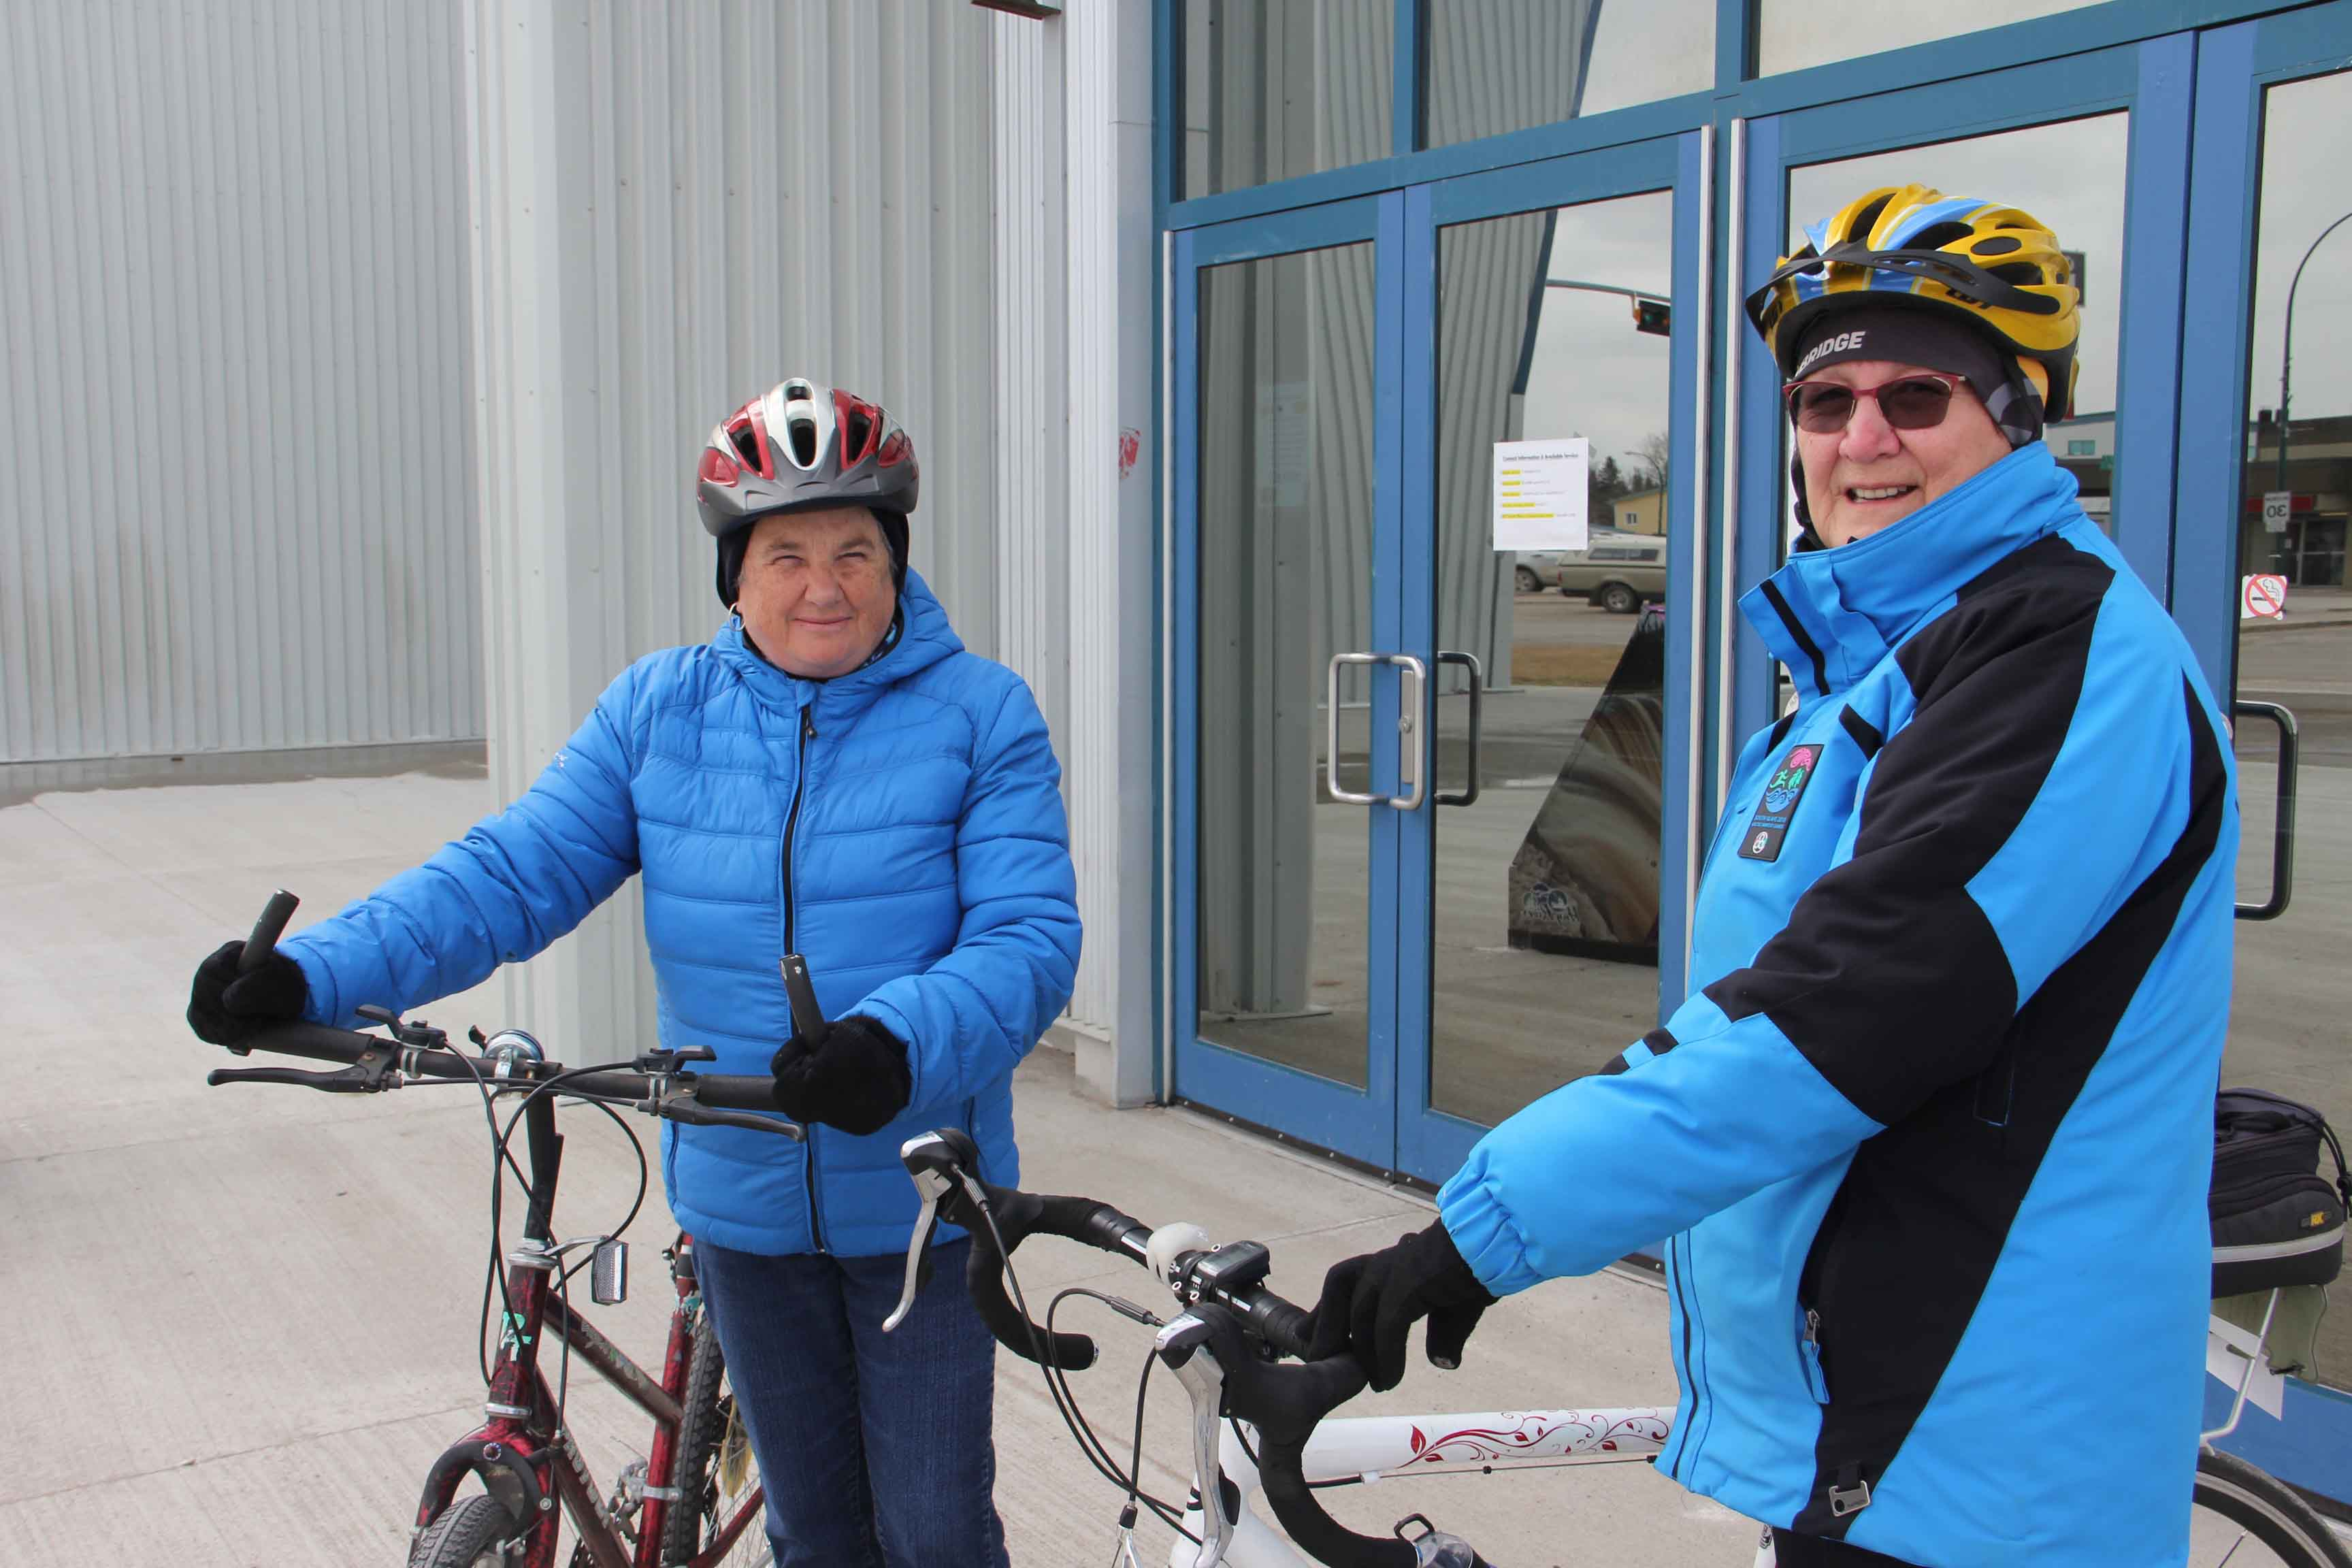 Nancy Makepeace, left, and Bonnie Crowther kicked of Women of Wheels in Hay River with a bike ride on May 1. Women on Wheels is set for each Wednesday of May. Paul Bickford/NNSL photo